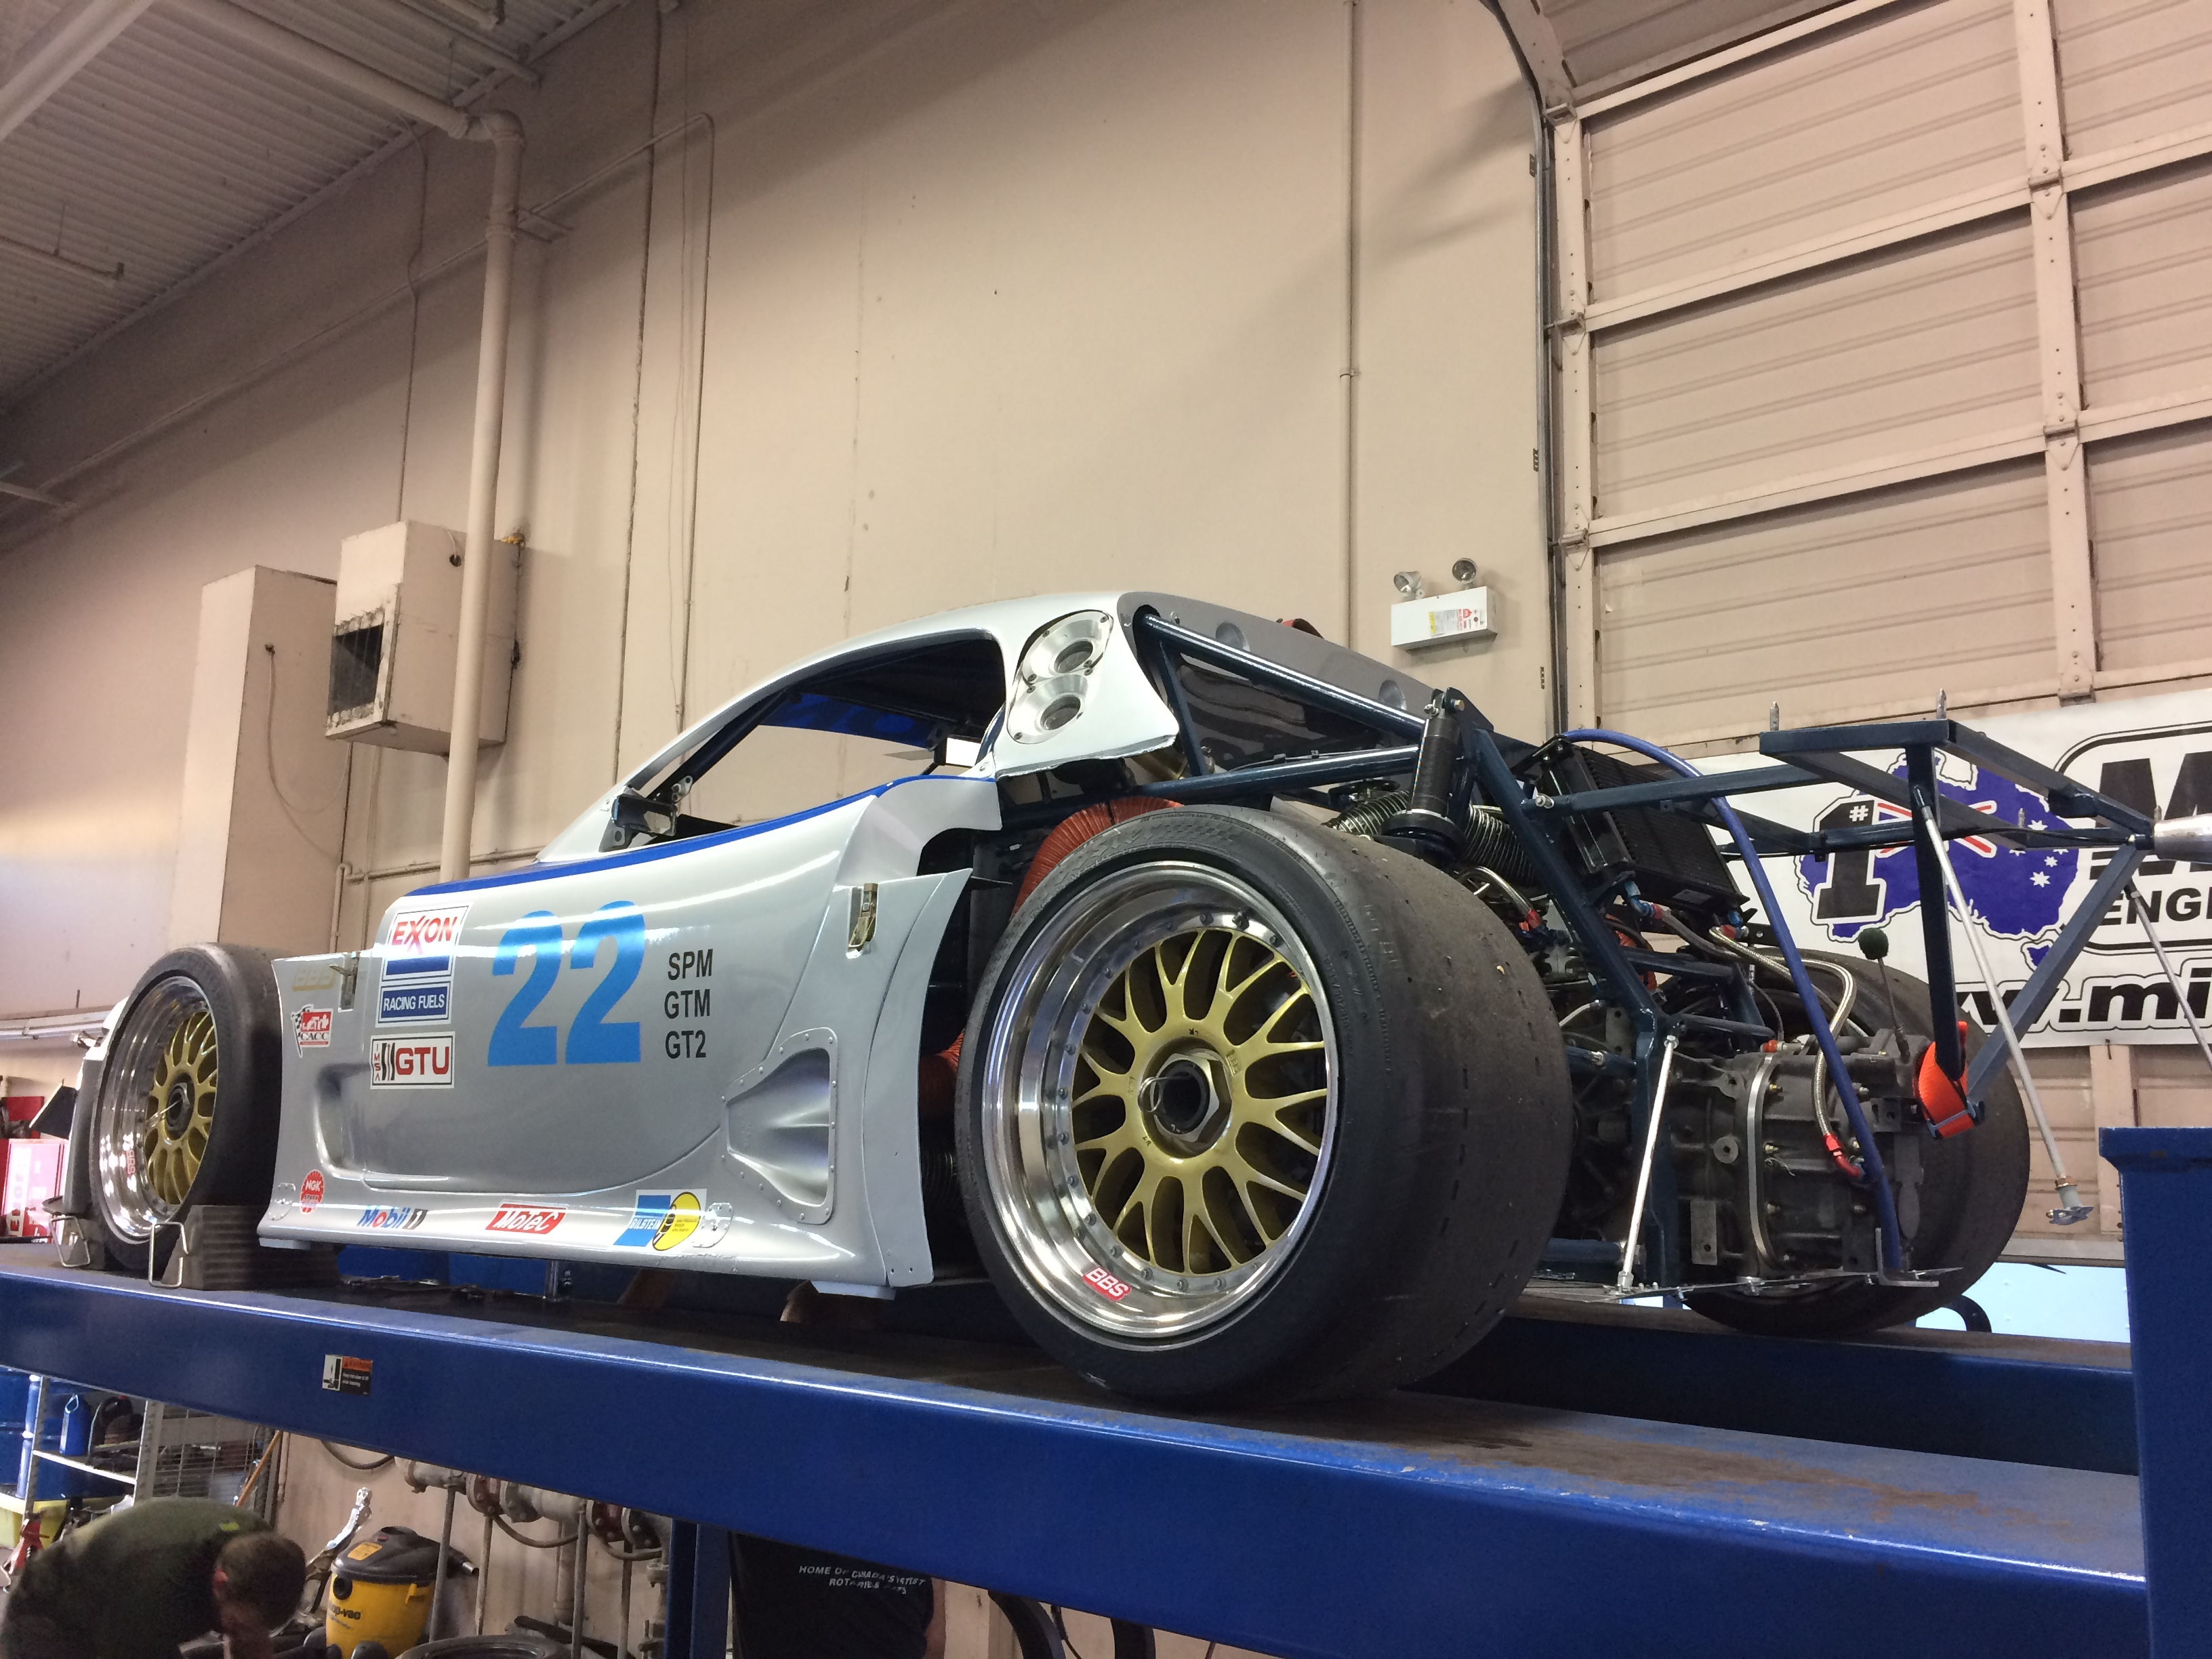 1997 imsa mazda rx7 tubeframe racecar For Sale in Nanaimo - $79000